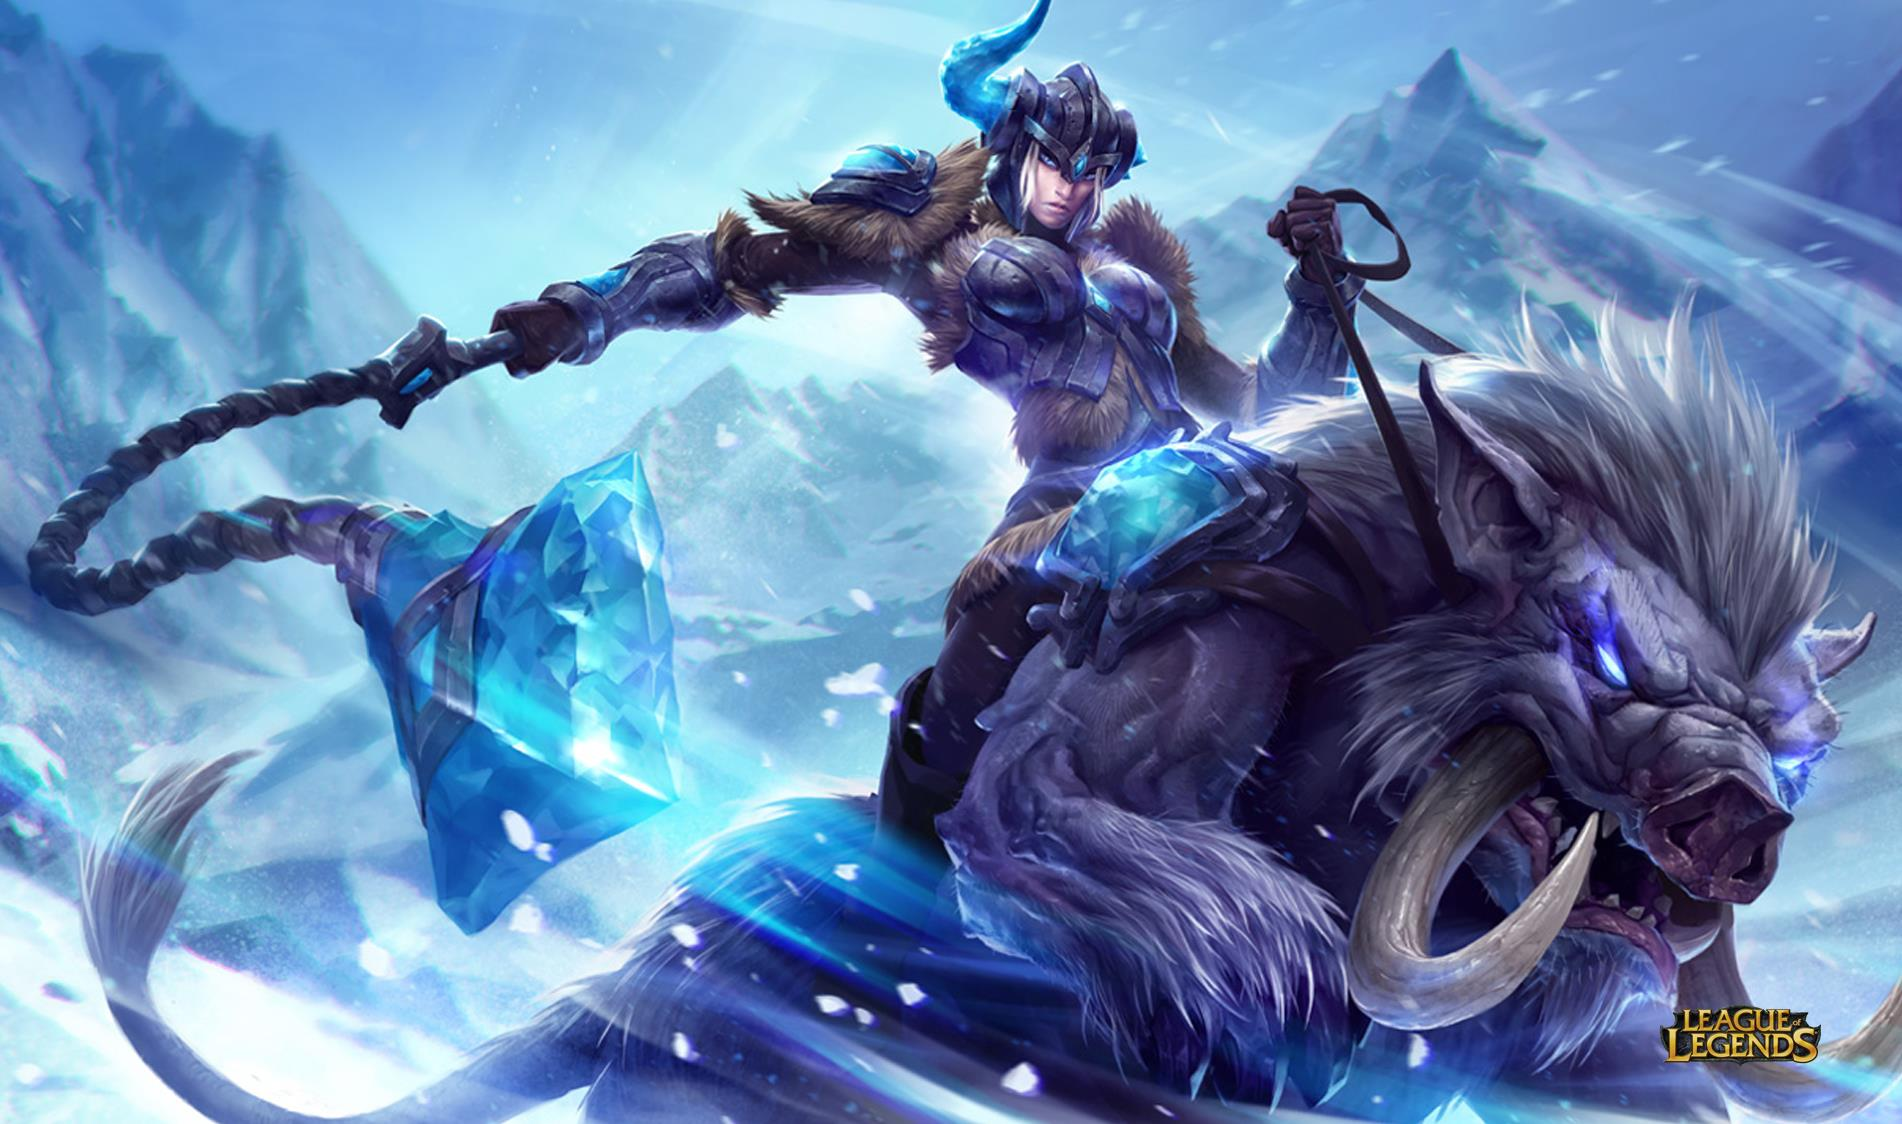 League of Legends wallpaper 58